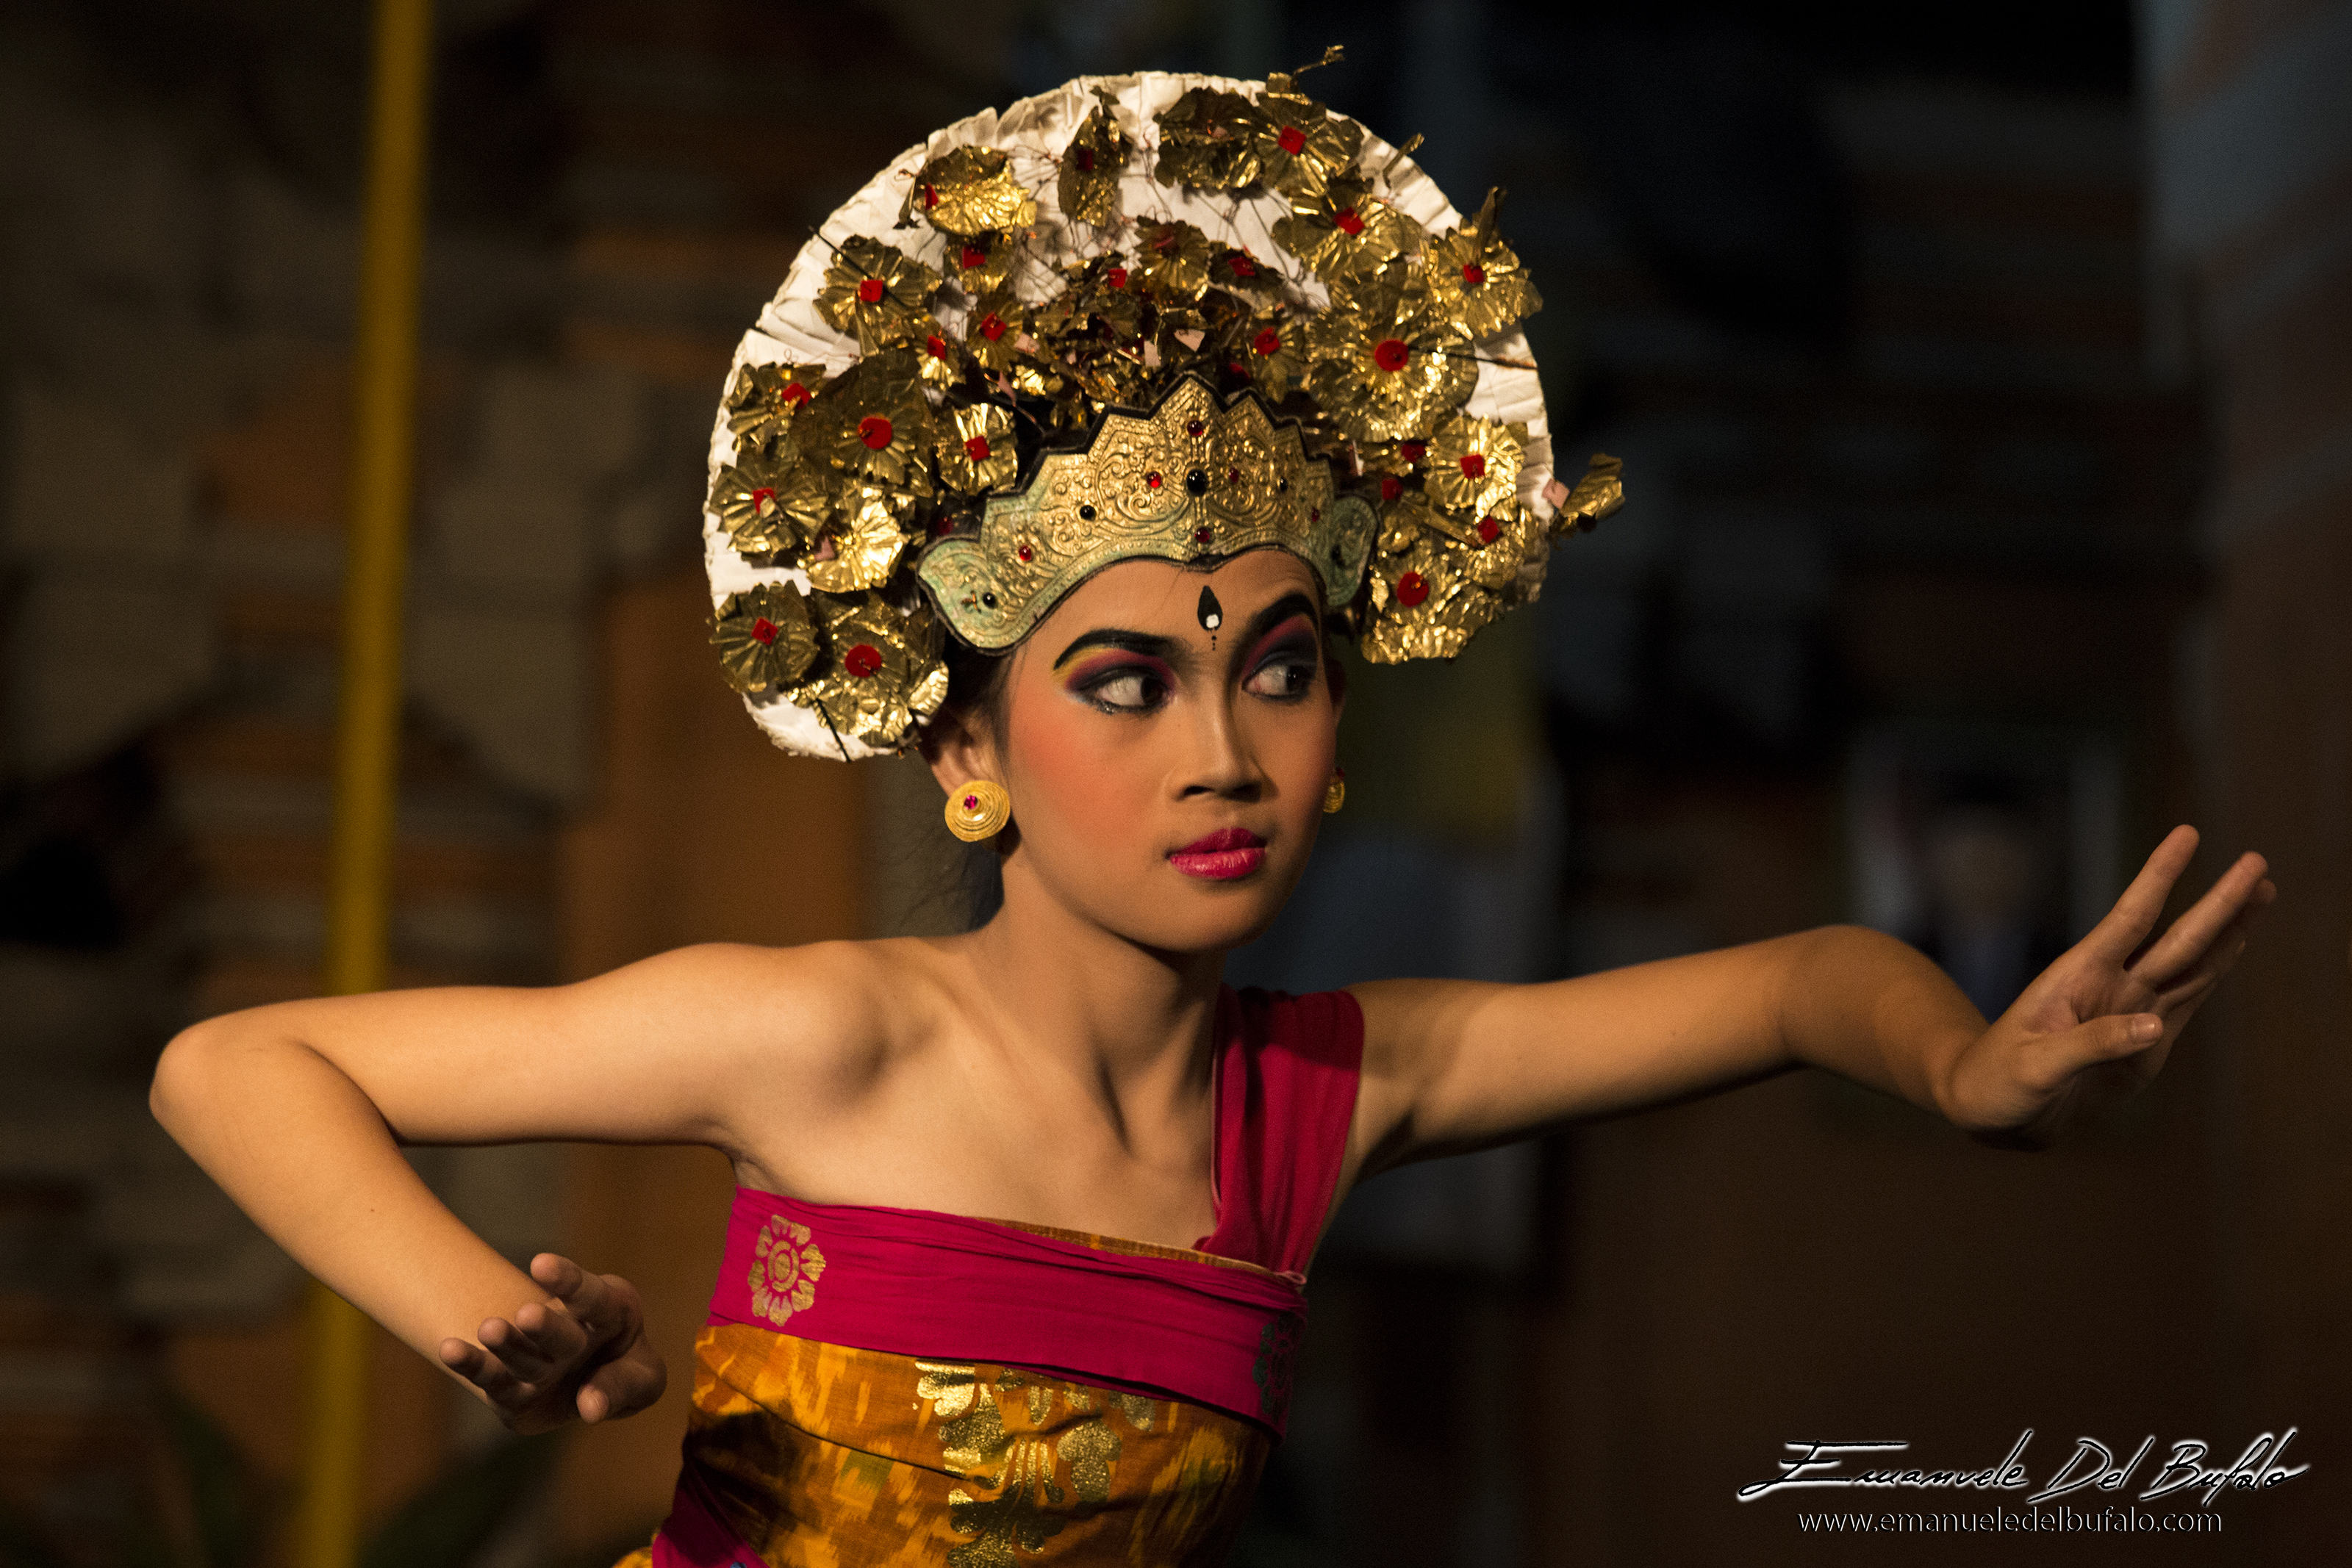 www.emanueledelbufalo.com #asia #bali #indonesia #travel #ubud #dance #tradition #people #portrait